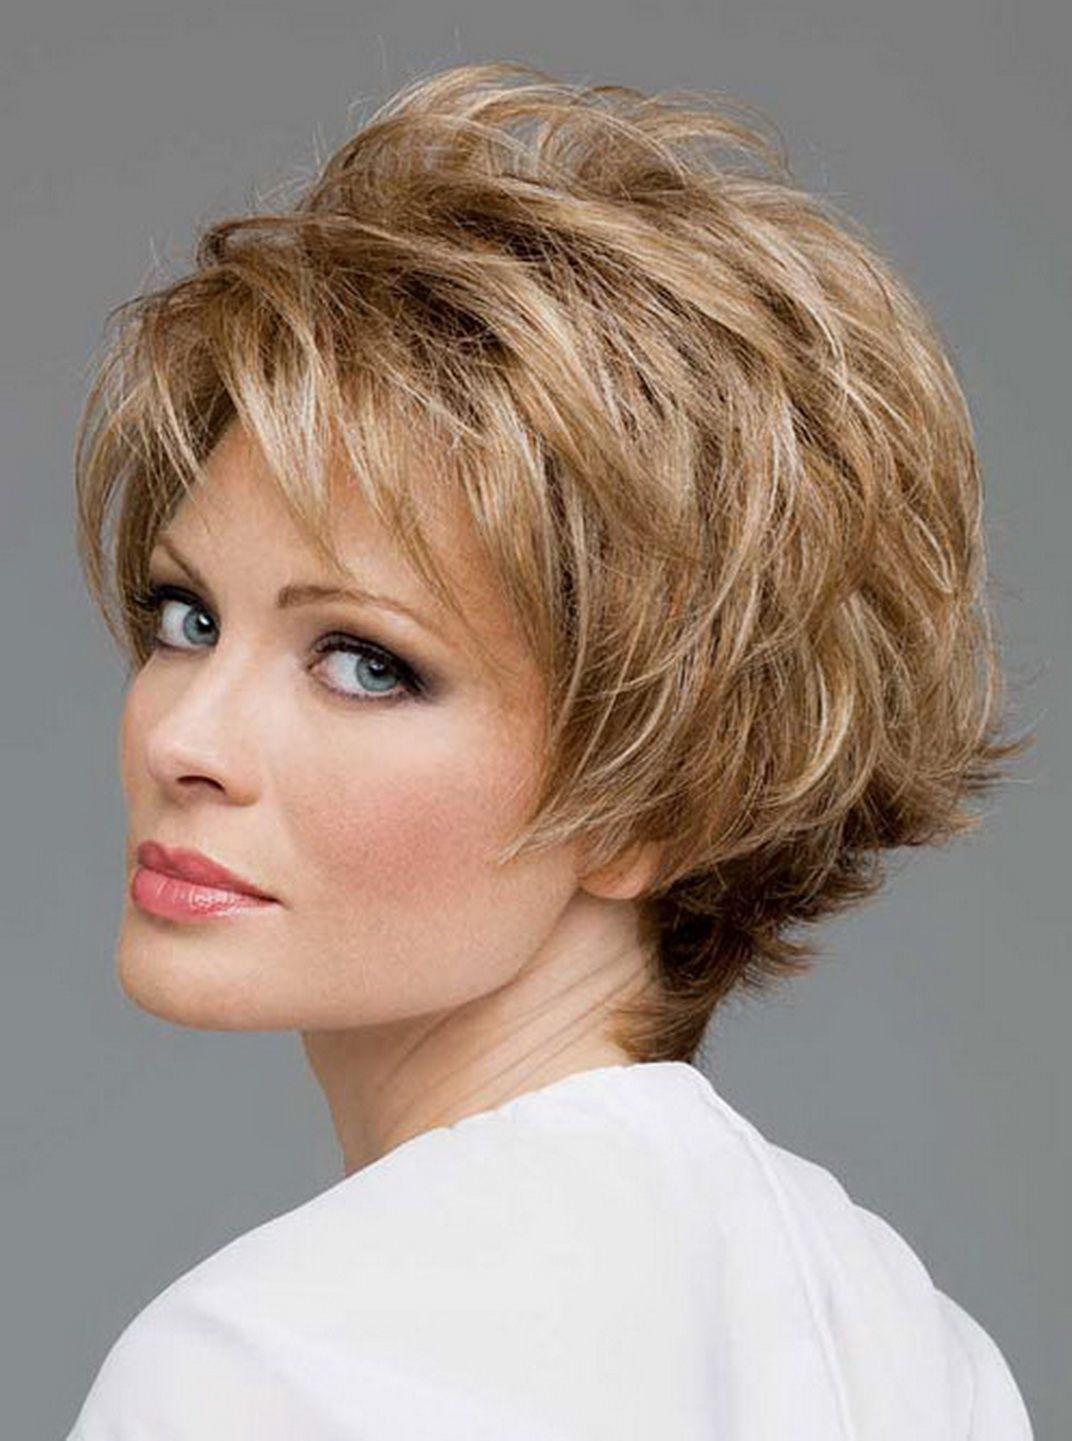 Edgy+Hairstyles+For+Over+60 | Trendy Short Hair Trends Haircuts For With Regard To Edgy Pixie Haircuts For Fine Hair (Gallery 16 of 20)